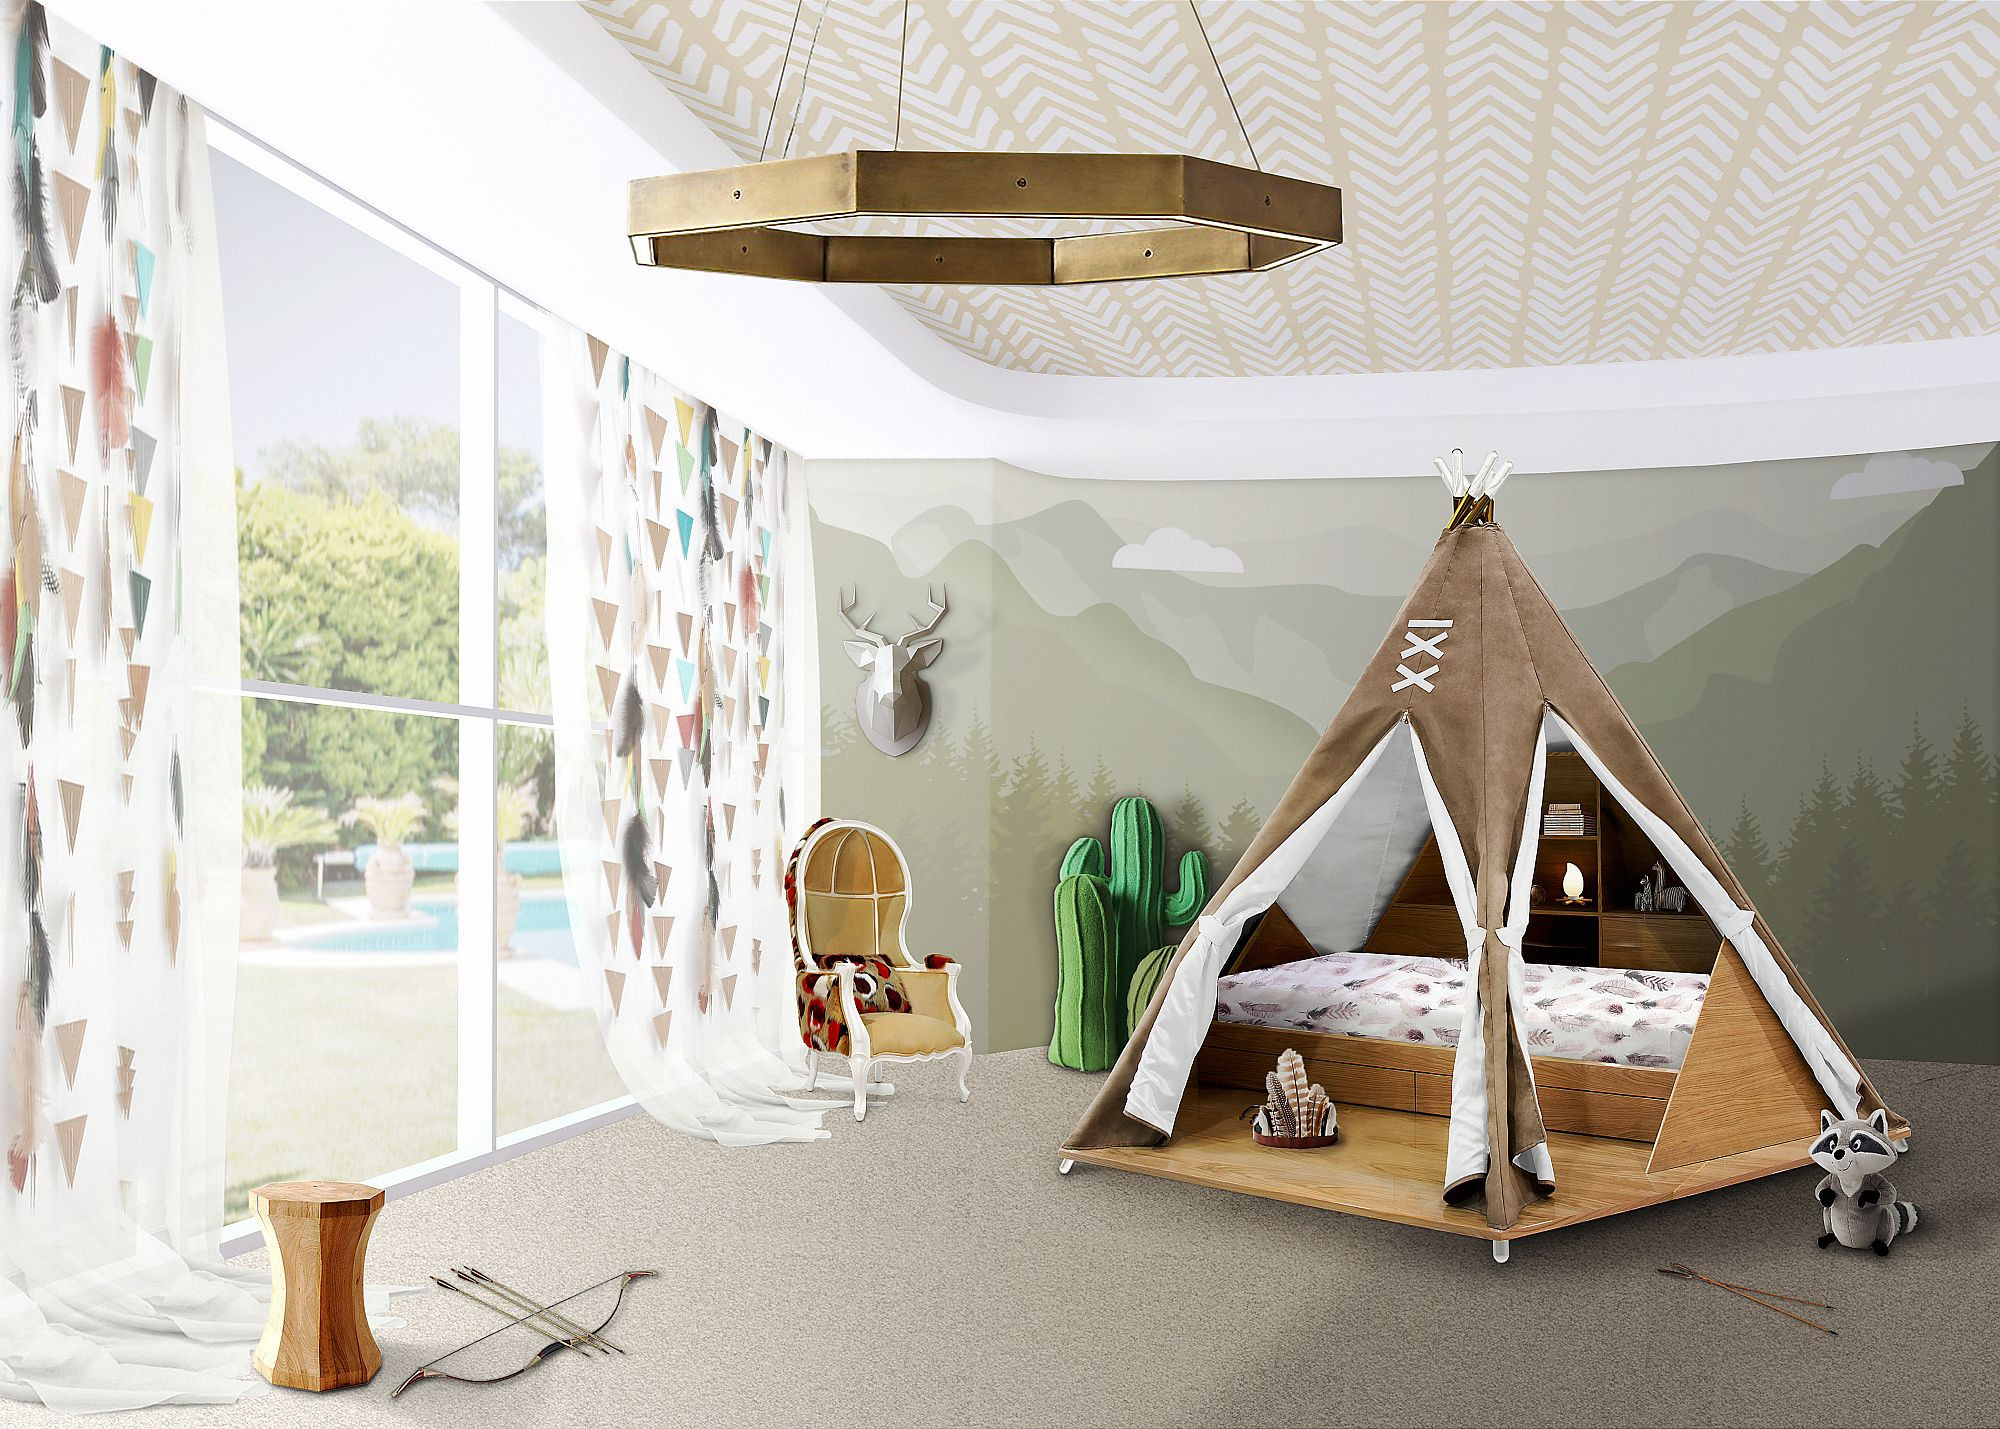 Best ideas about Kids Room Tent . Save or Pin Fun Design 10 Fabulous Teepees for that Playful Kids' Room Now.